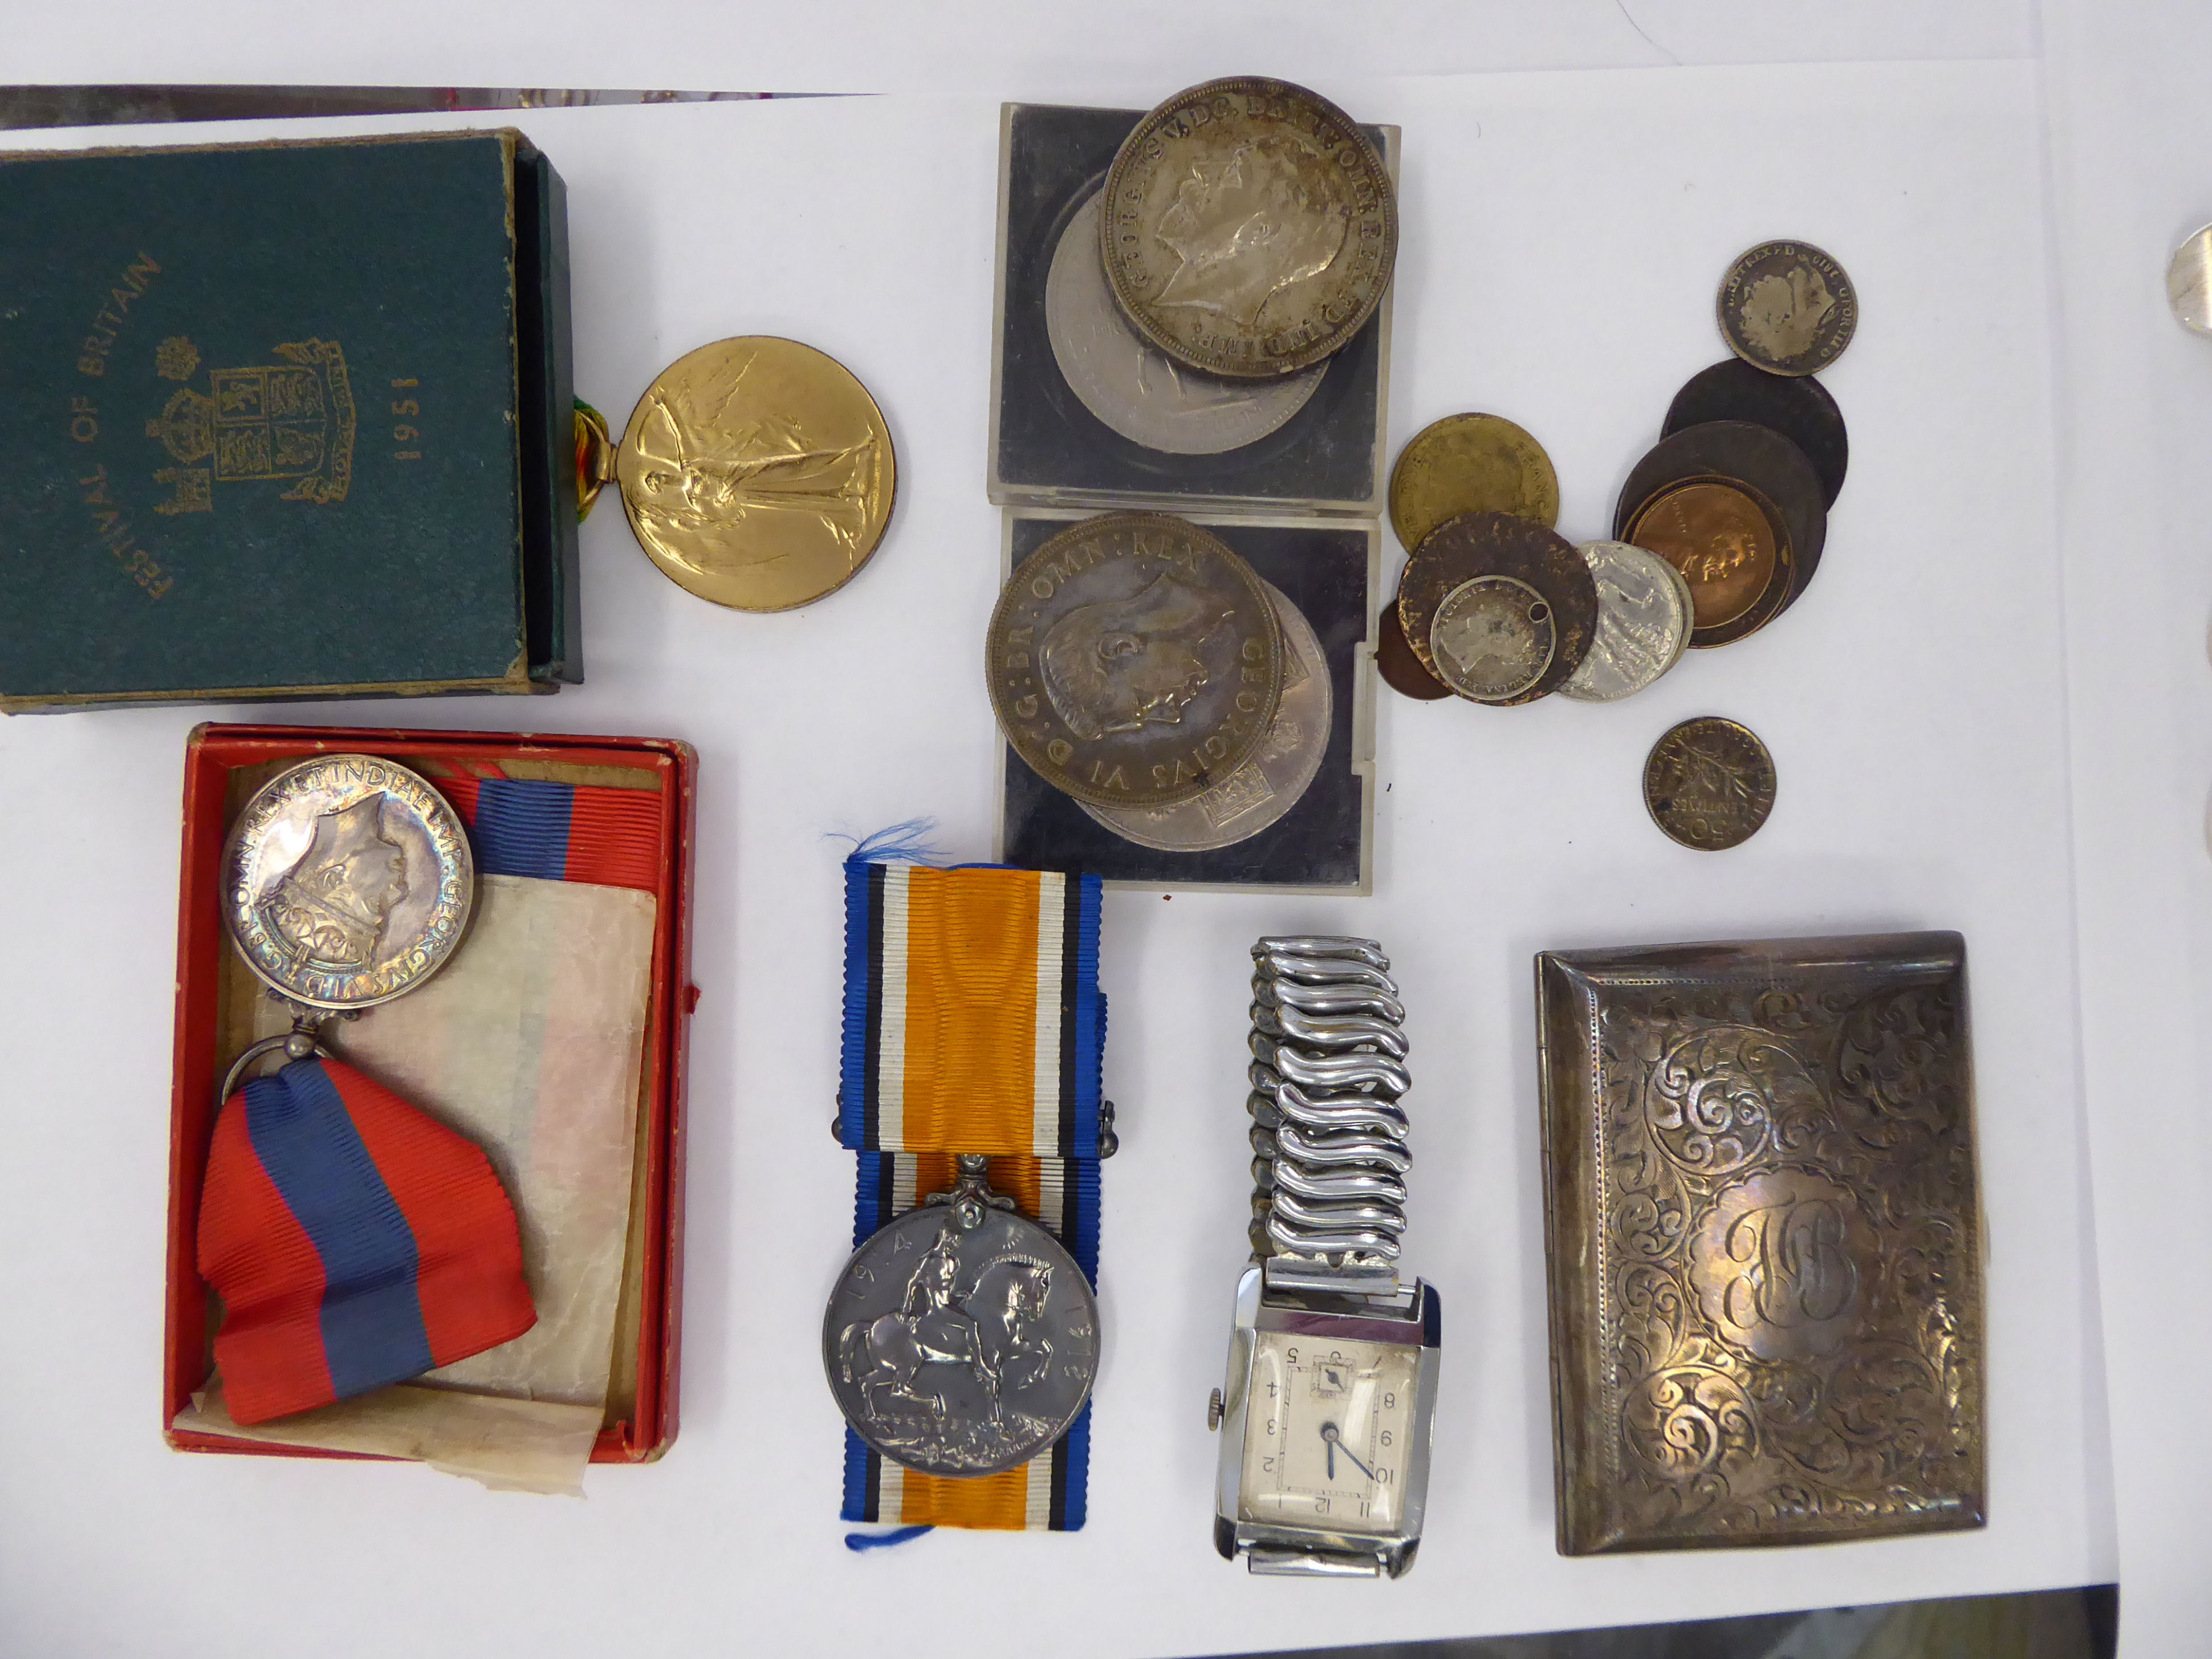 Lot 27 - Coins, silver collectables, watches and medals: to include two Great War medals,